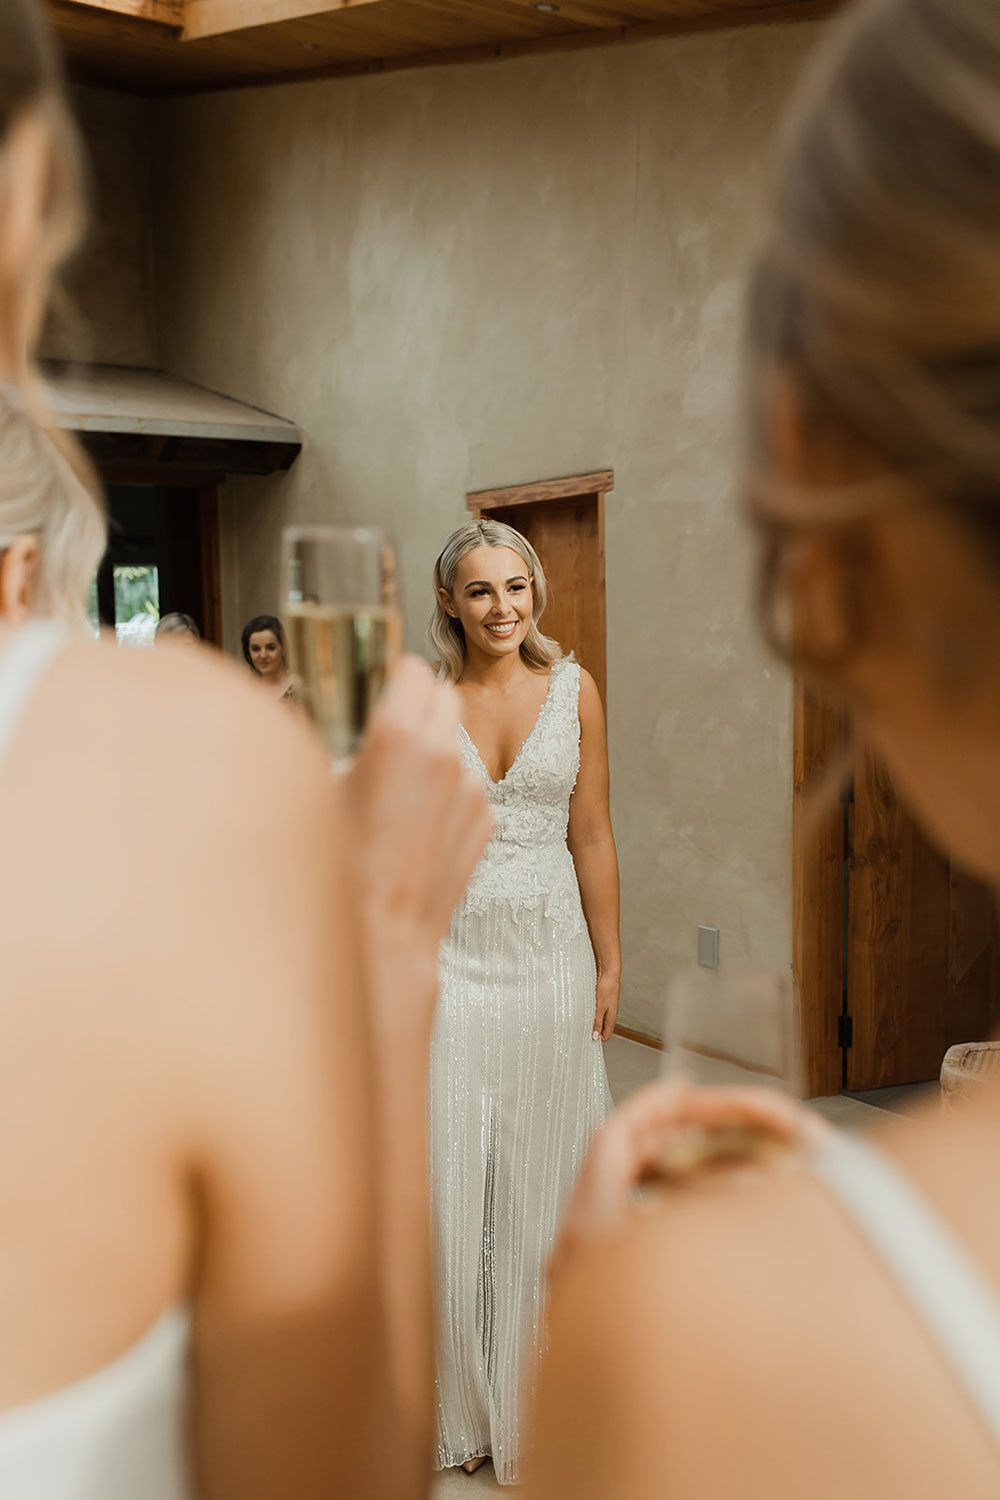 Bride wearing bespoke fitted V-neck gown in beaded lace with front split and sheer overlay by Vinka bridal boutique NZ - just ready